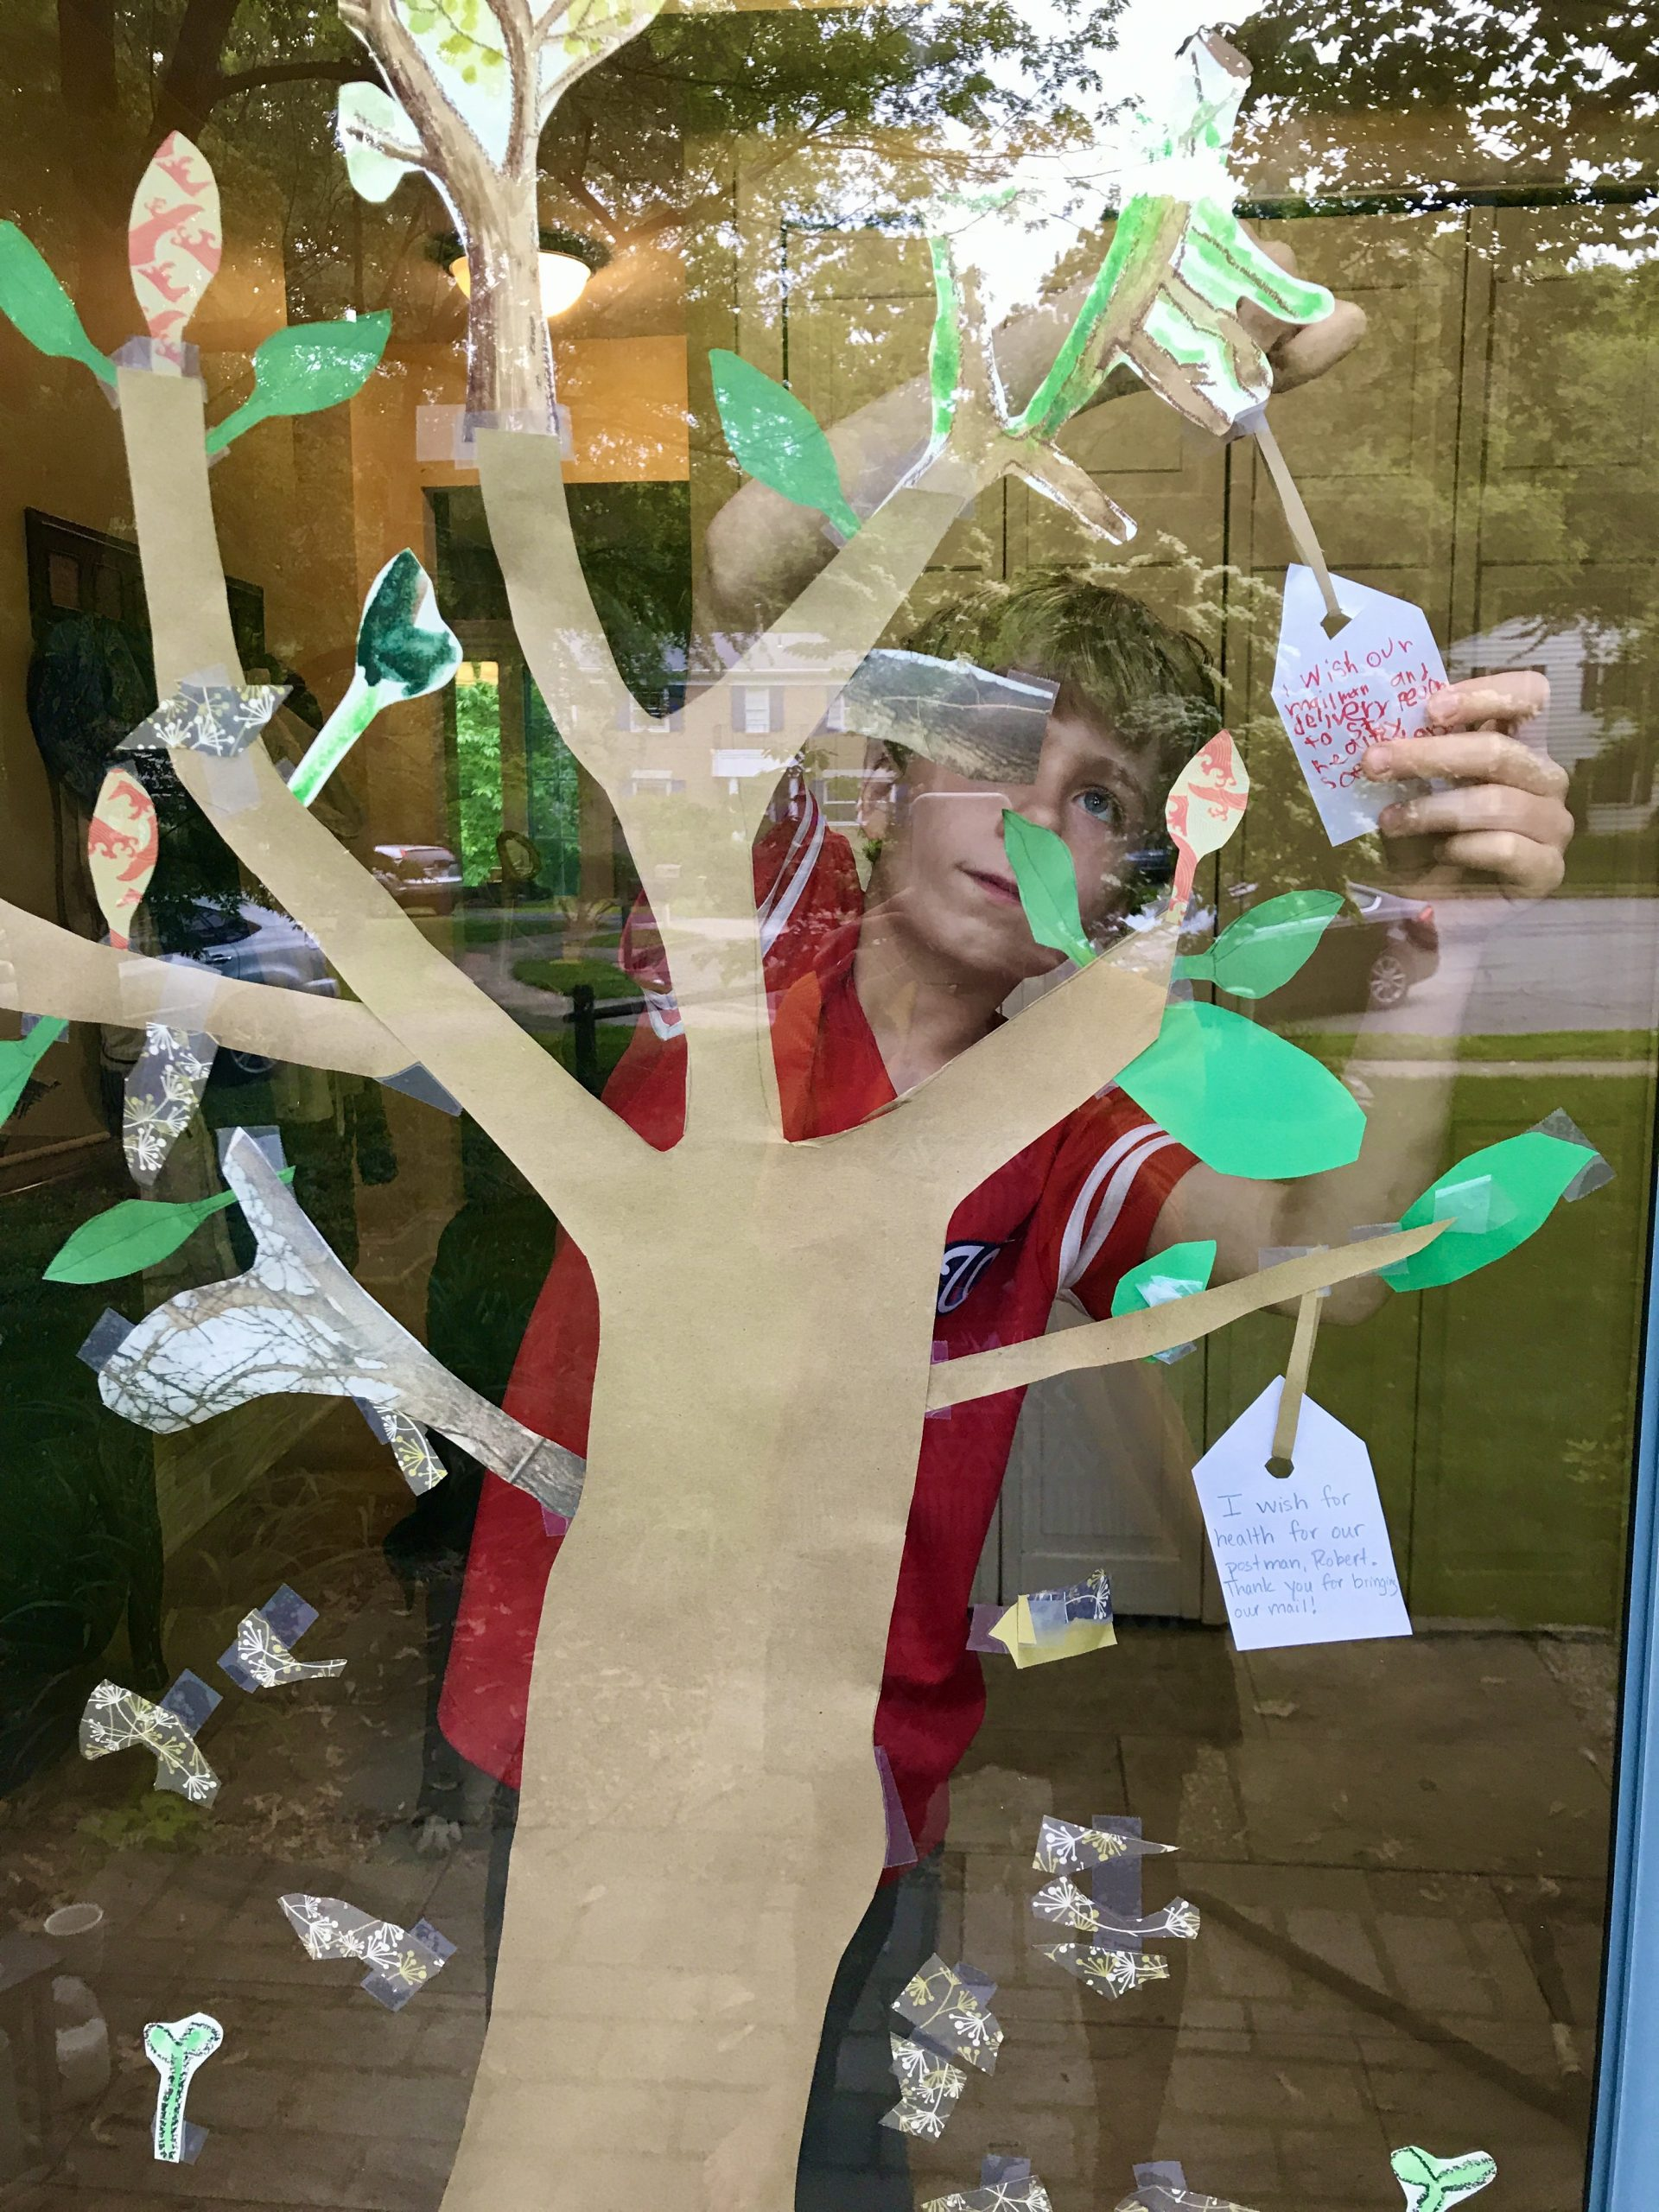 Exterior view of a paper tree with green paper leaves taped to a window, a boy reaches to hang a white tag on one branch